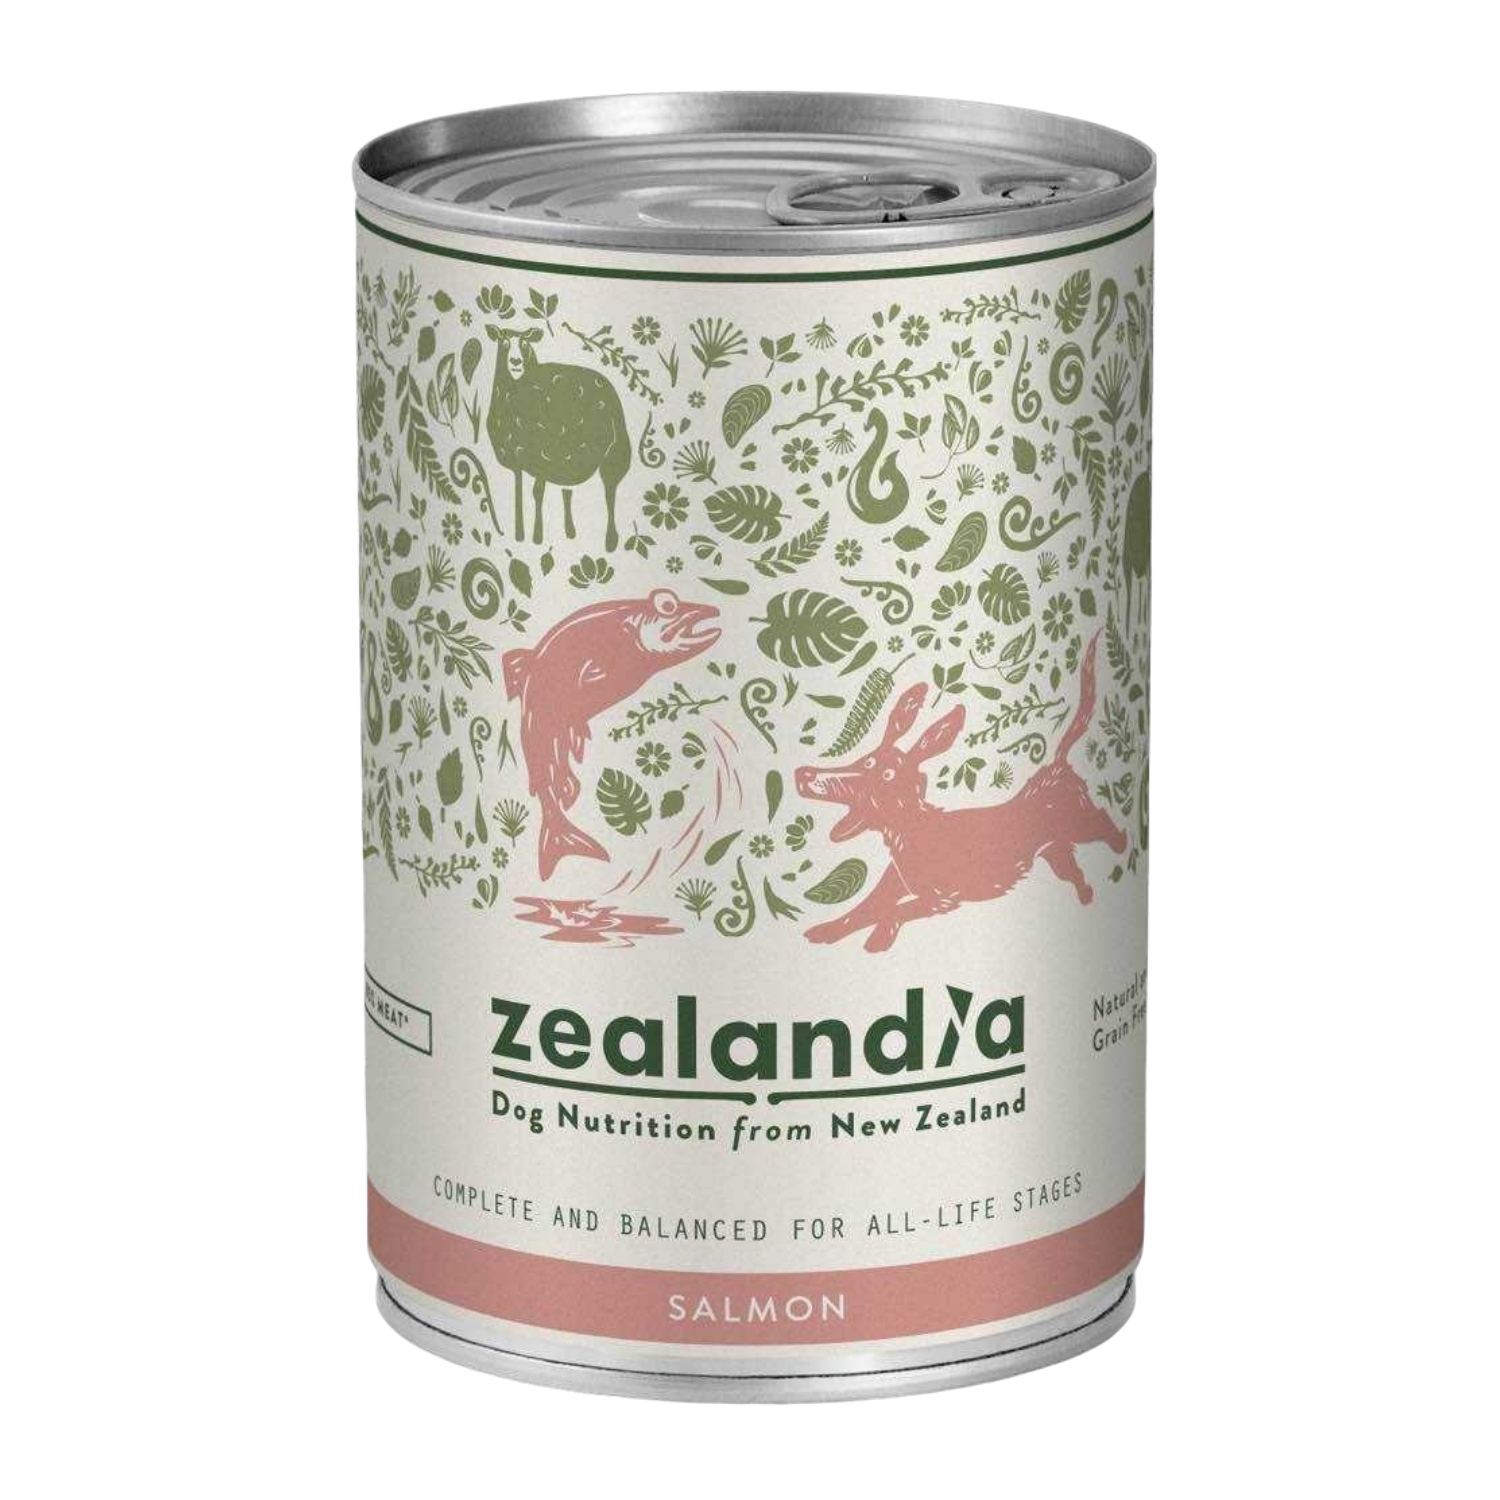 Zealandia (King Salmon) for Dogs - 385g Can